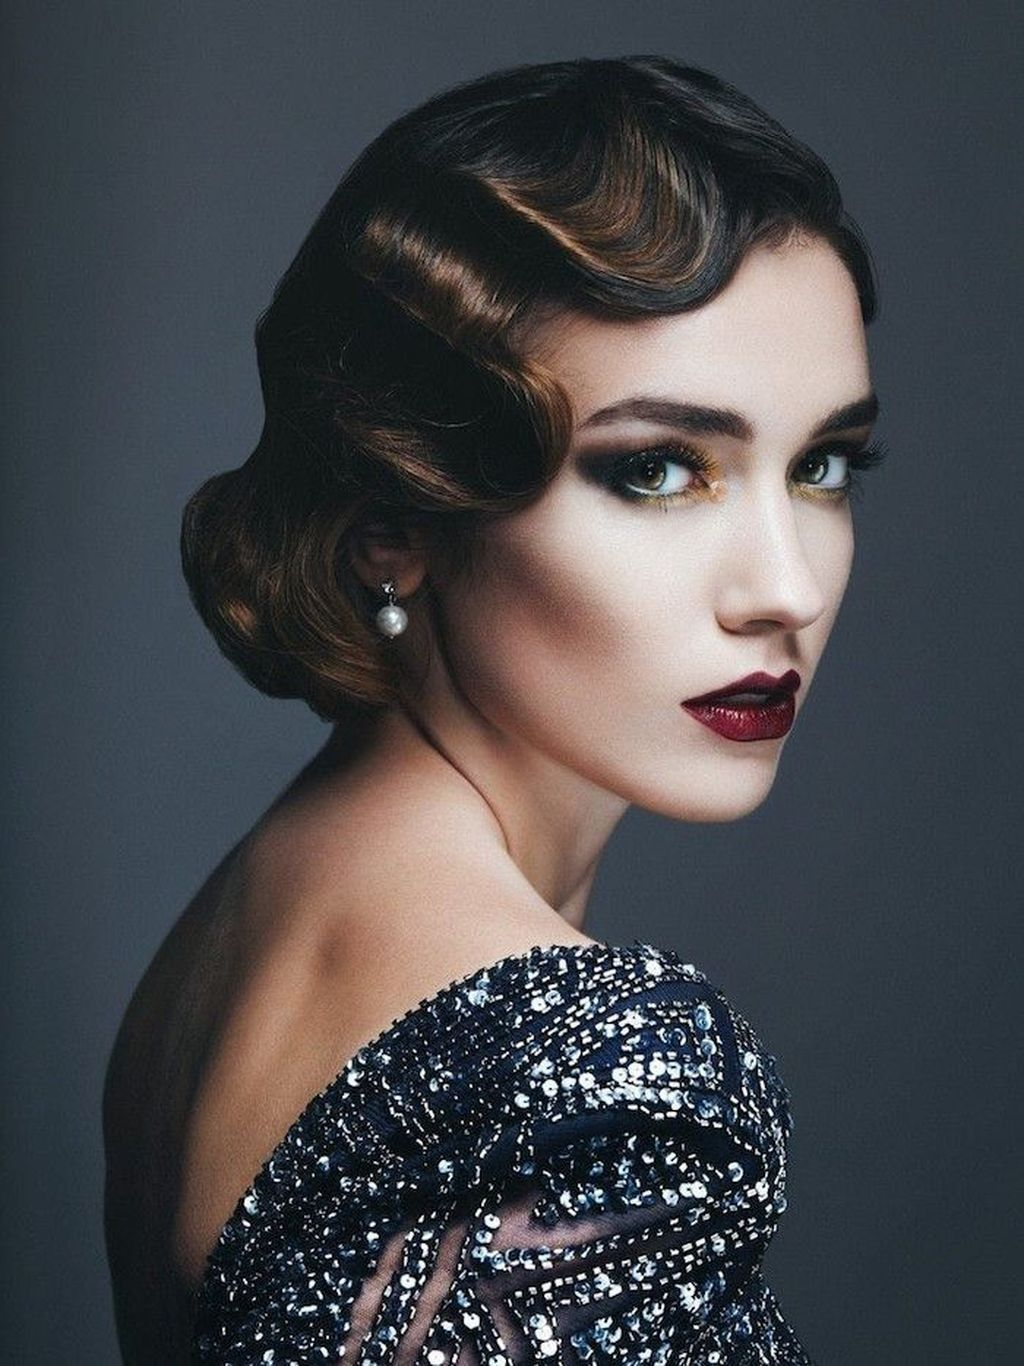 12 Latest Gatsby Hairstyles Ideas For Short Hair - ADDICFASHION